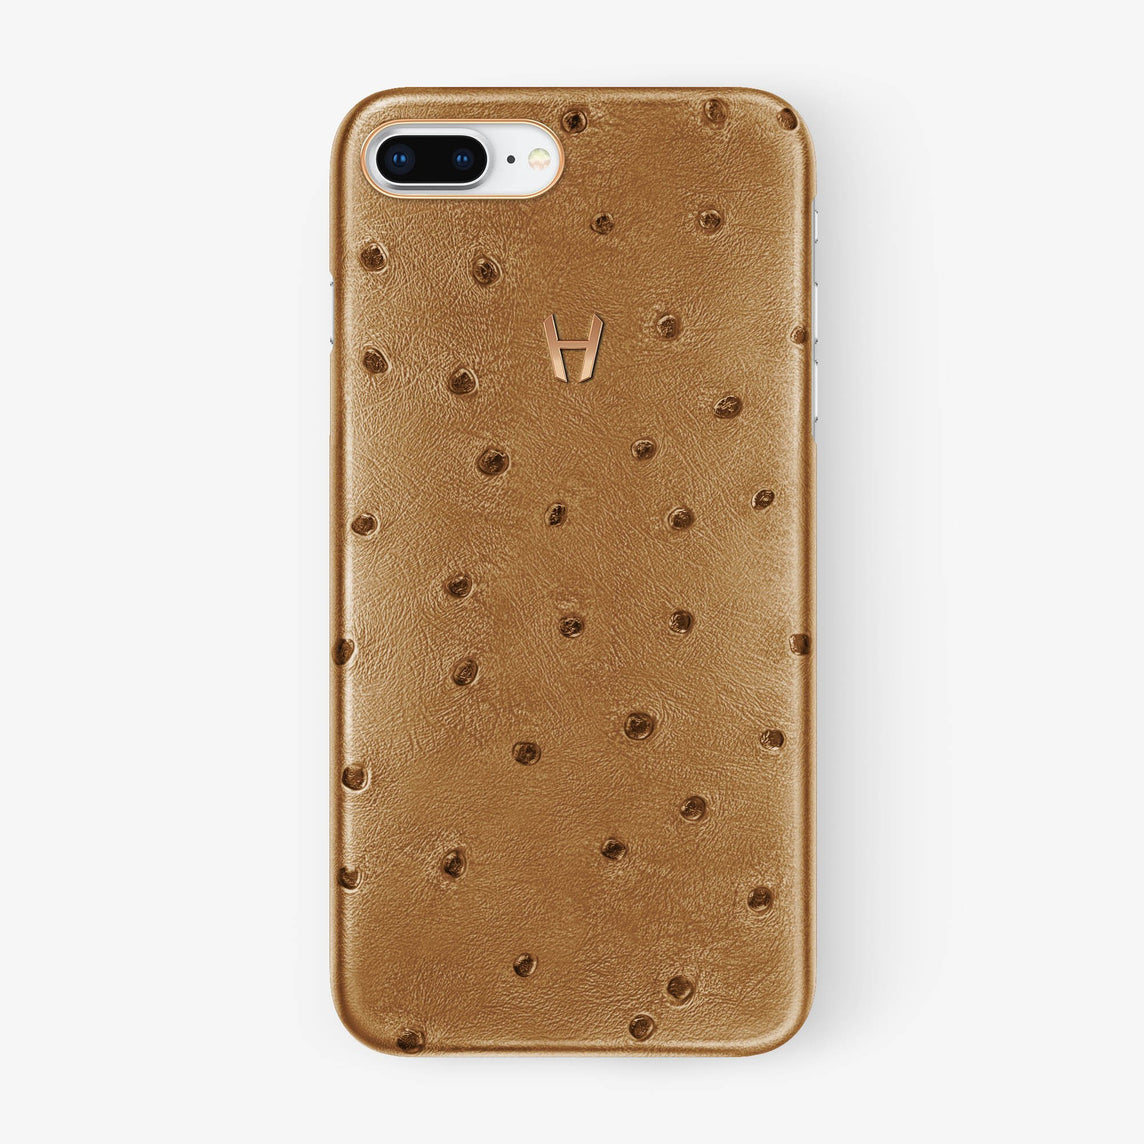 Ostrich Case iPhone 7/8 Plus | Chestnut - Rose Gold without-personalization